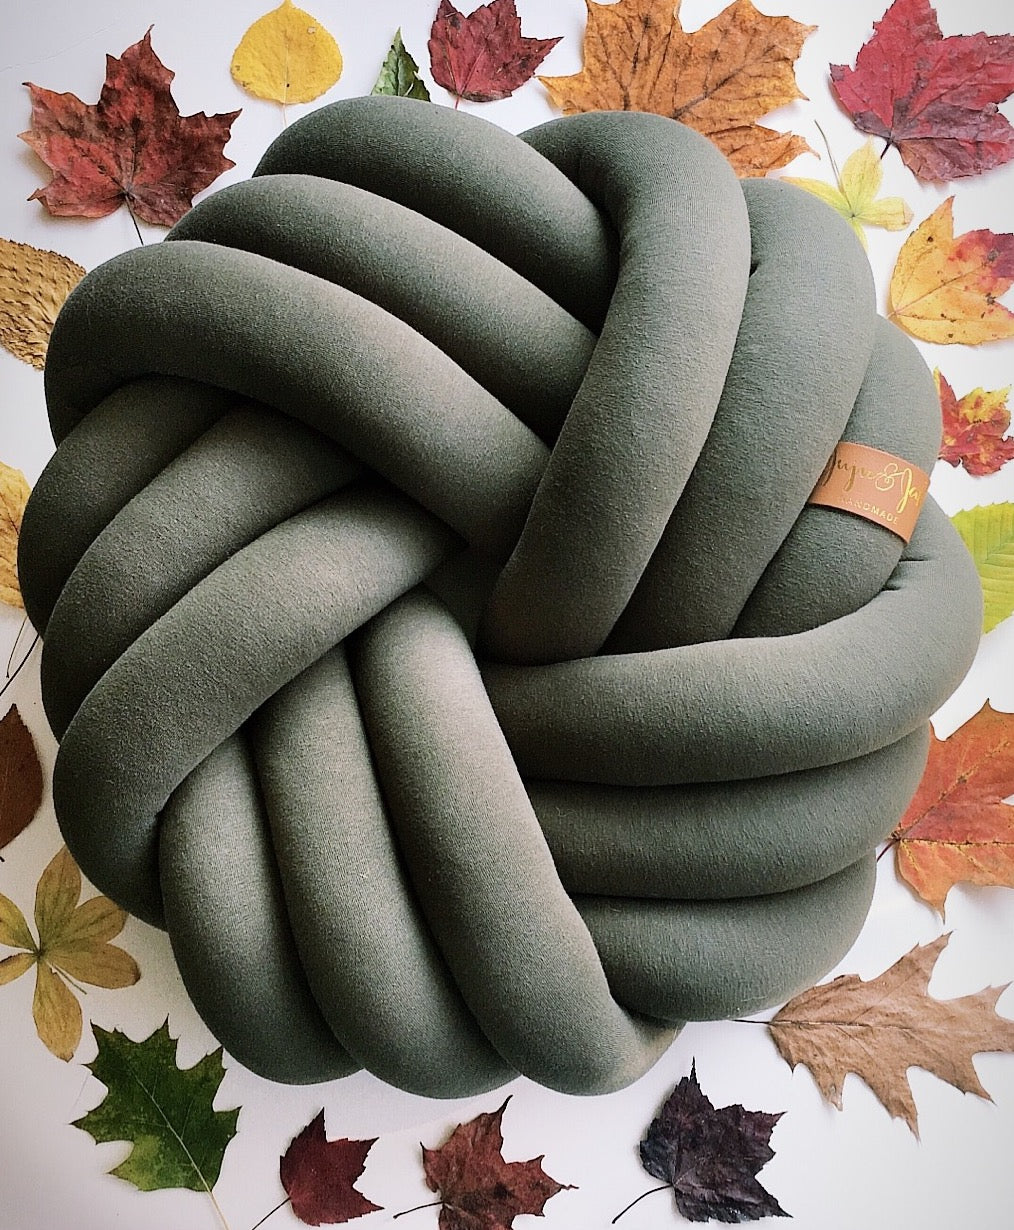 Dark Olive | Kids Floor Knot Cushion / Floor Pillow - See more Kids Knot Pillows & Cushions at JujuAndJake.com